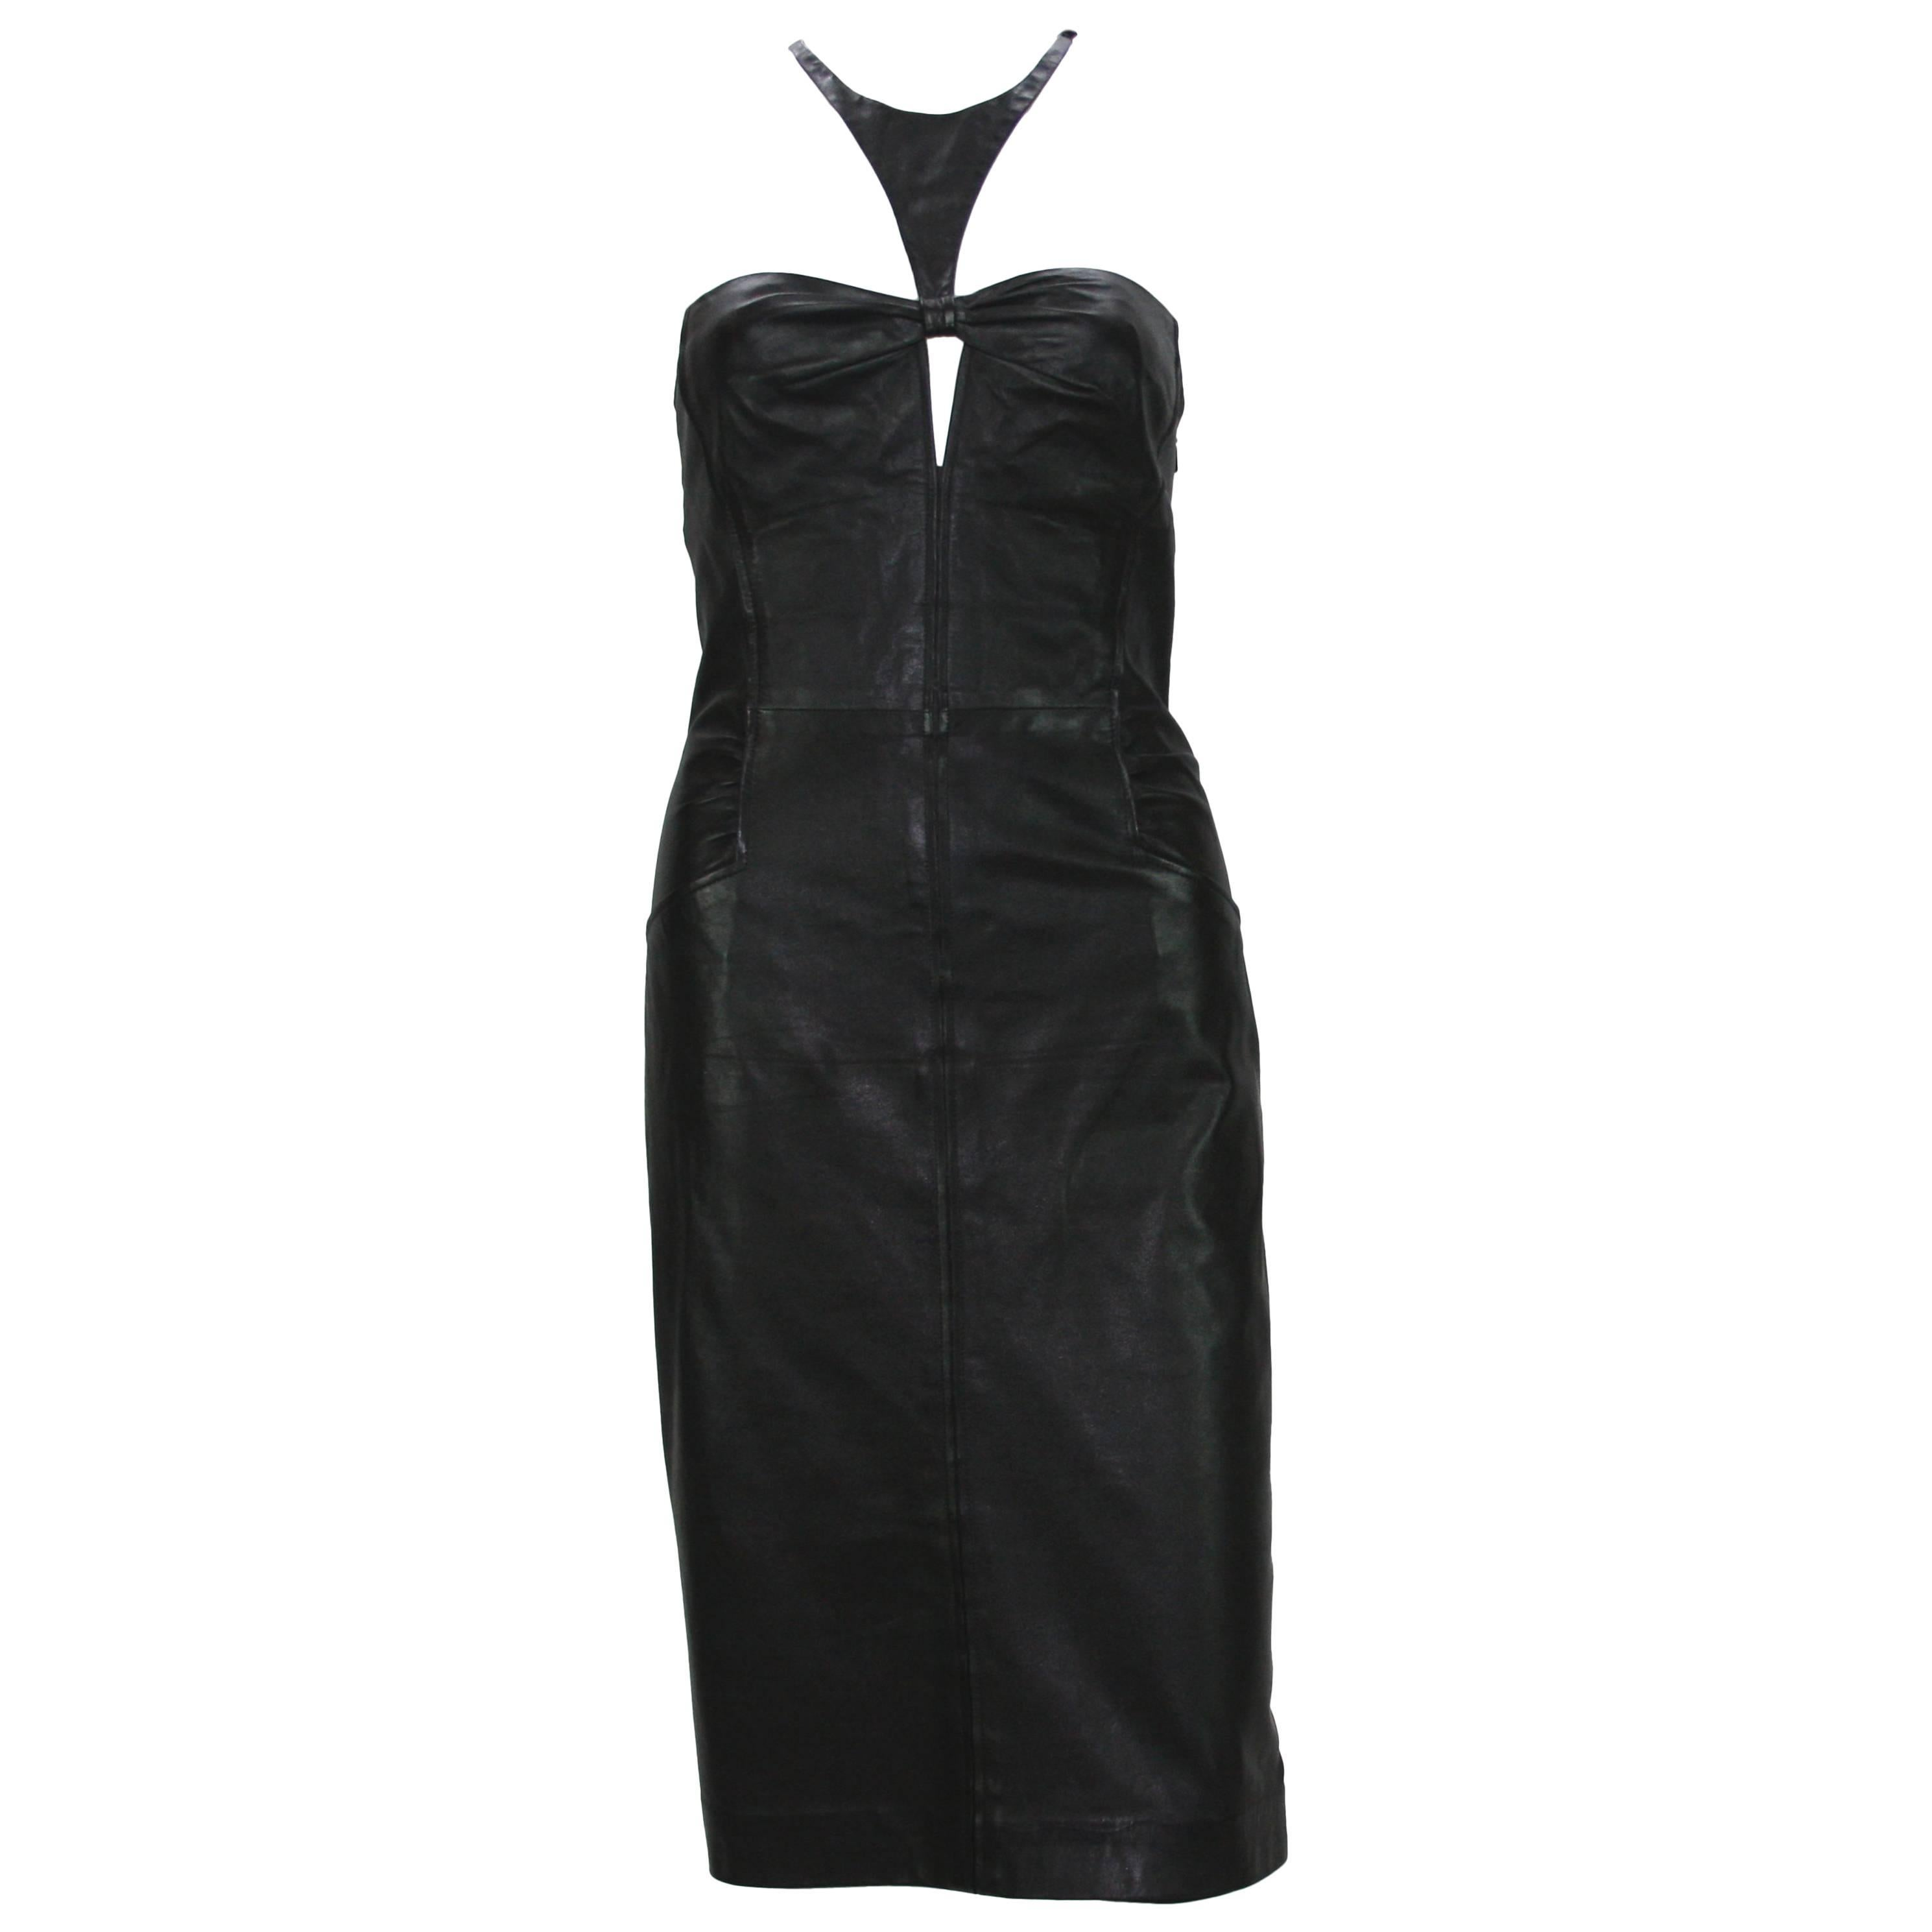 Tom Ford for Gucci 2004 Collection Black Leather Cocktail Dress It. 44 - US 8